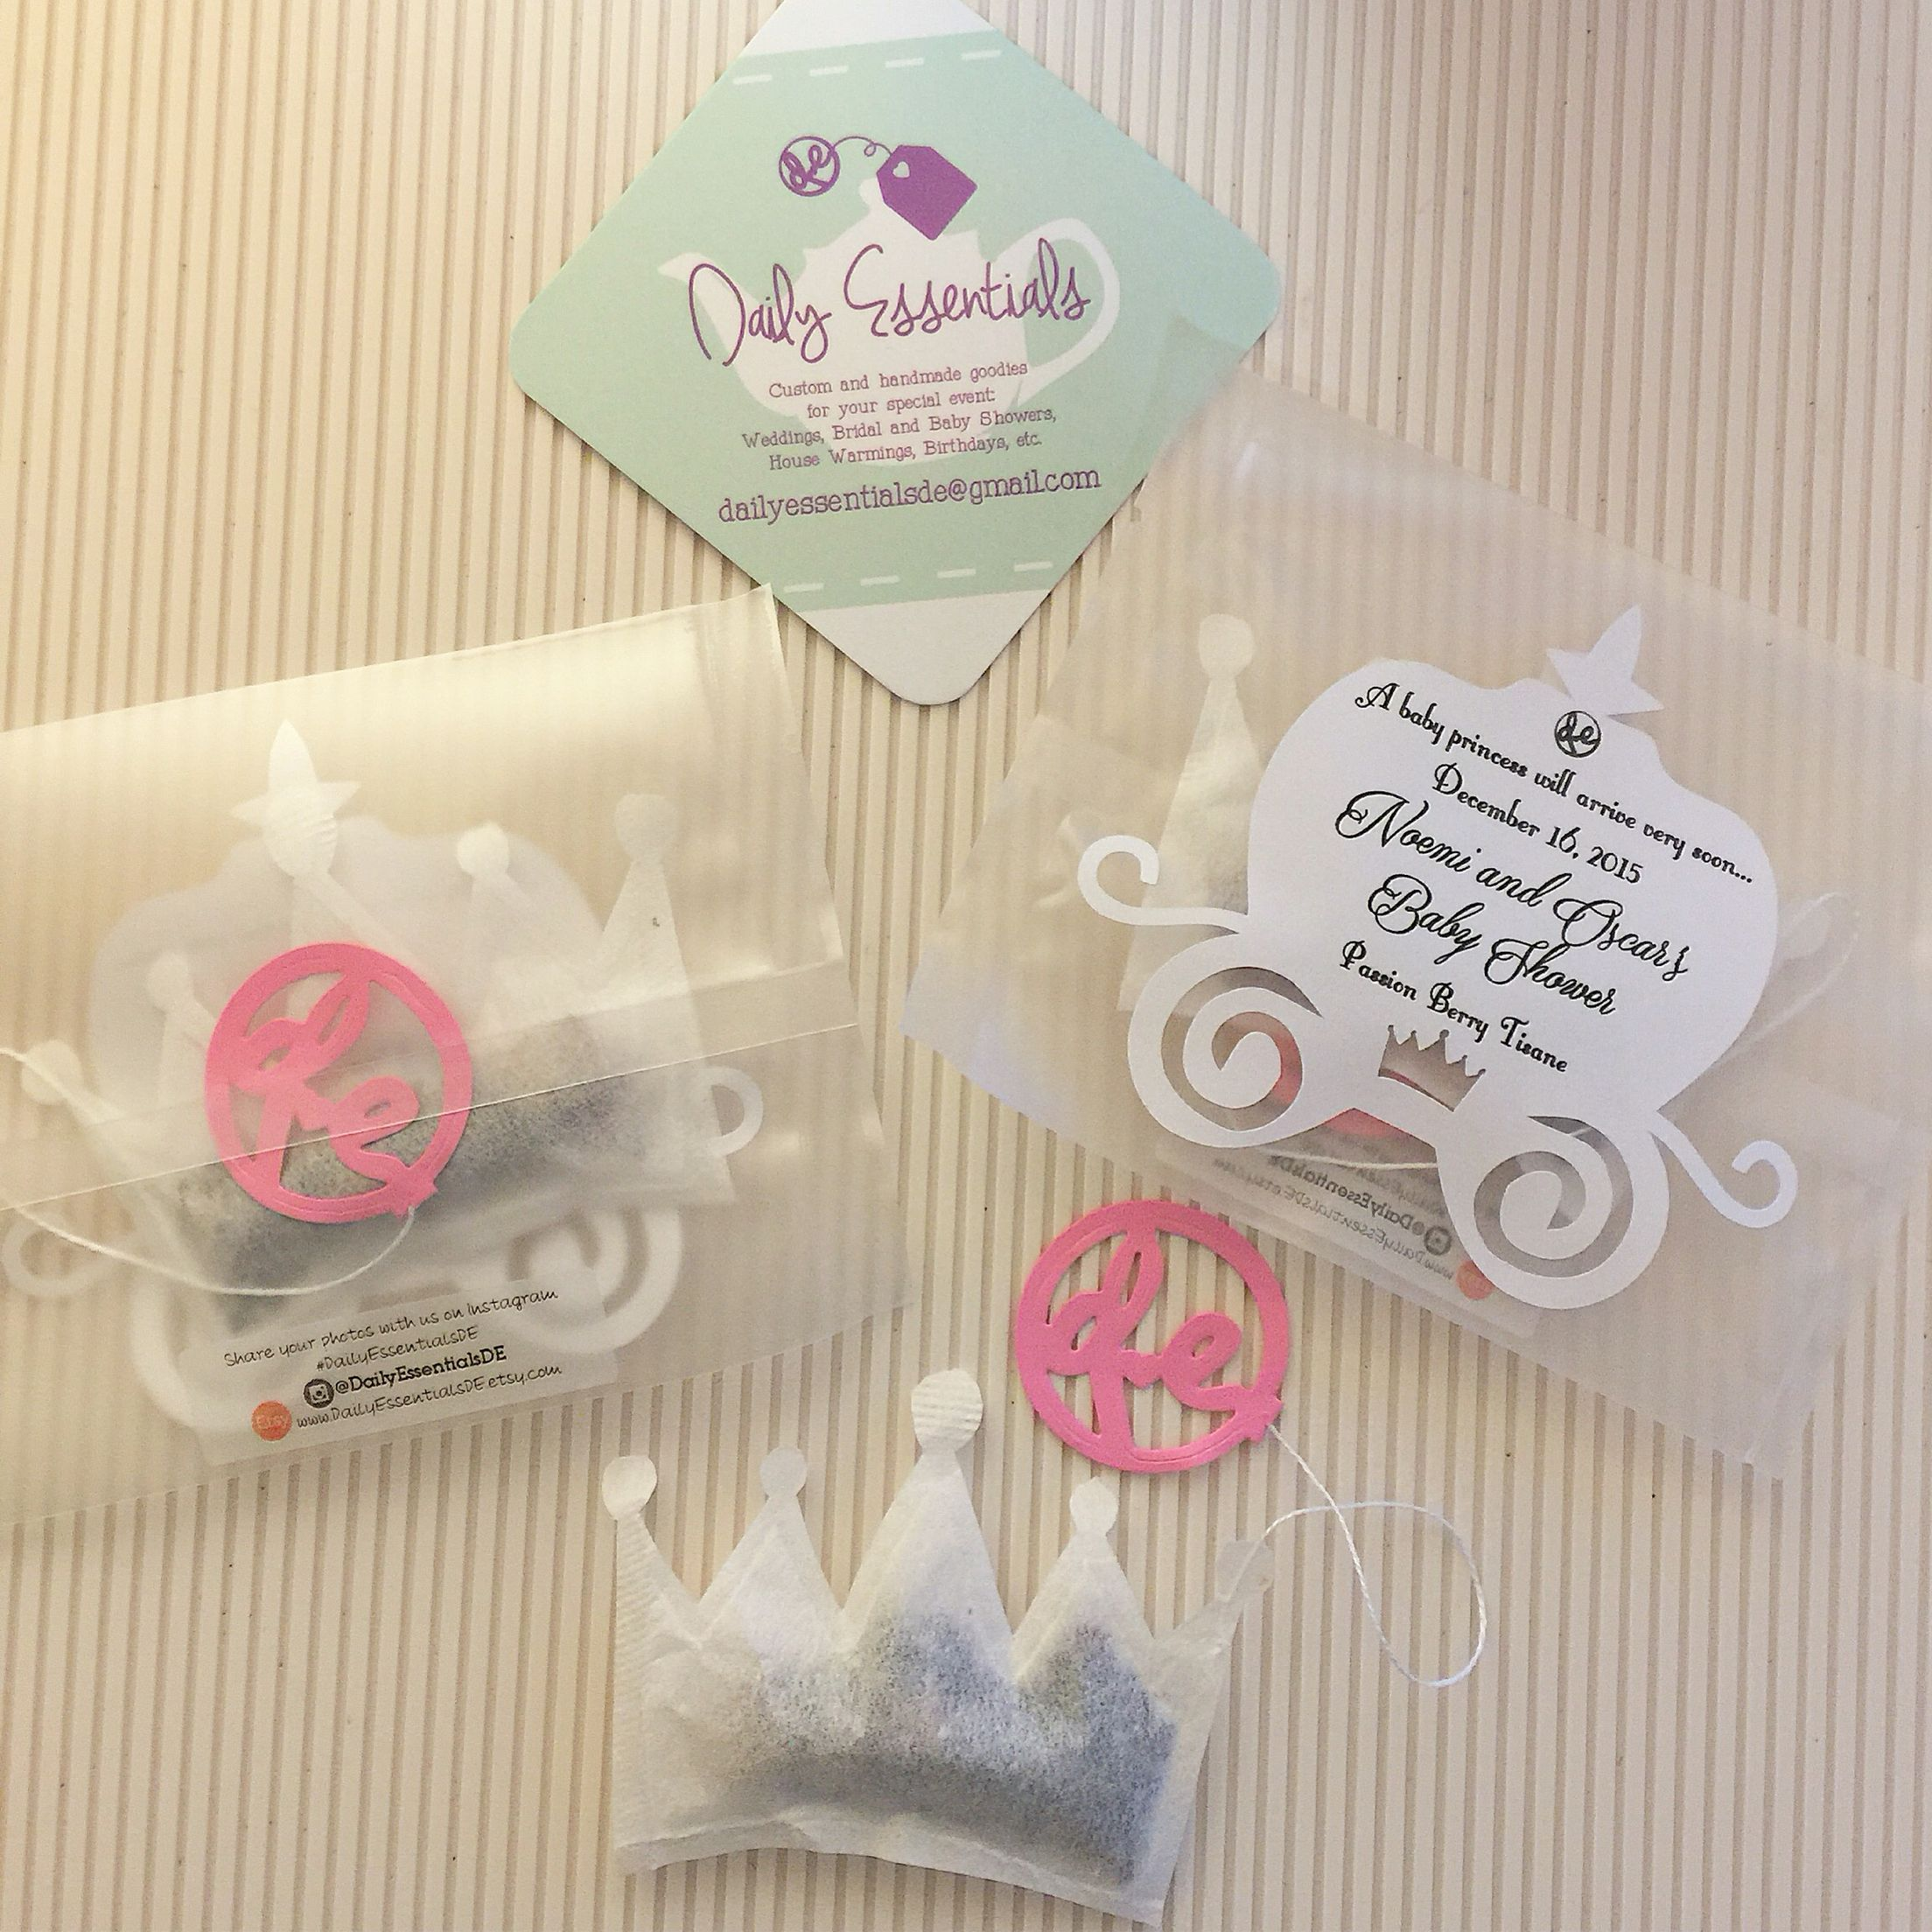 Special #Princess #Teabags For A Soon To Be Princess @Dailyessentialsde